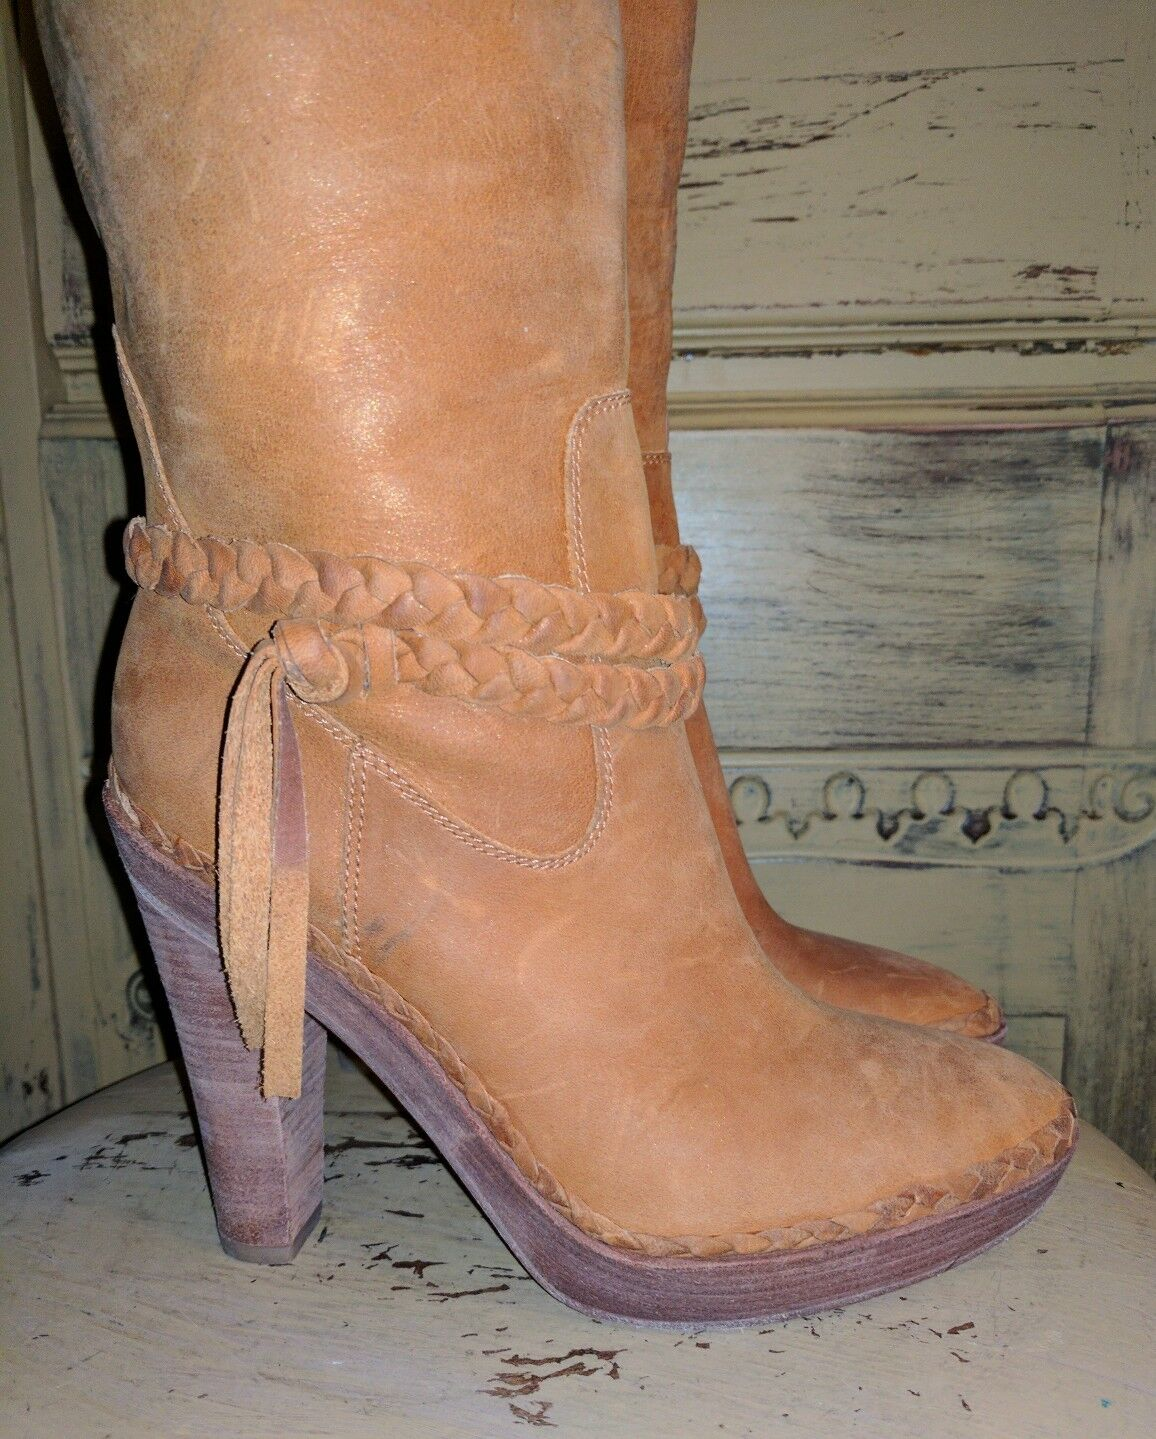 COLE HAAN G SERIES SOFT NUBUCK BOOTS LEATHER HIGH HEEL RIDING BOOTS NUBUCK N AIR 7.5 M 916e8a